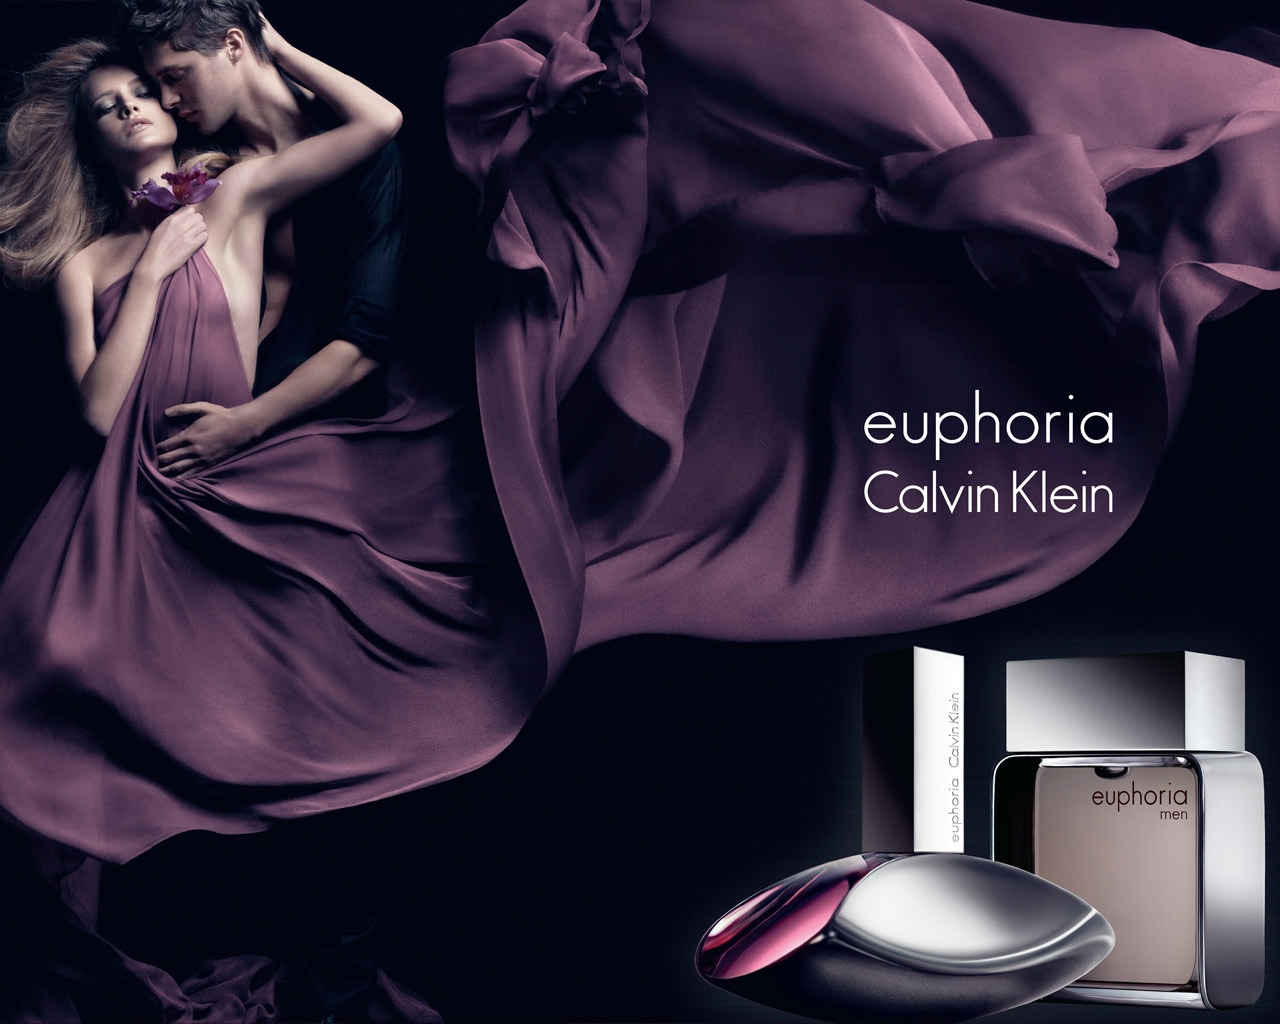 I want to be beautiful: Euphoria perfume in Dallas